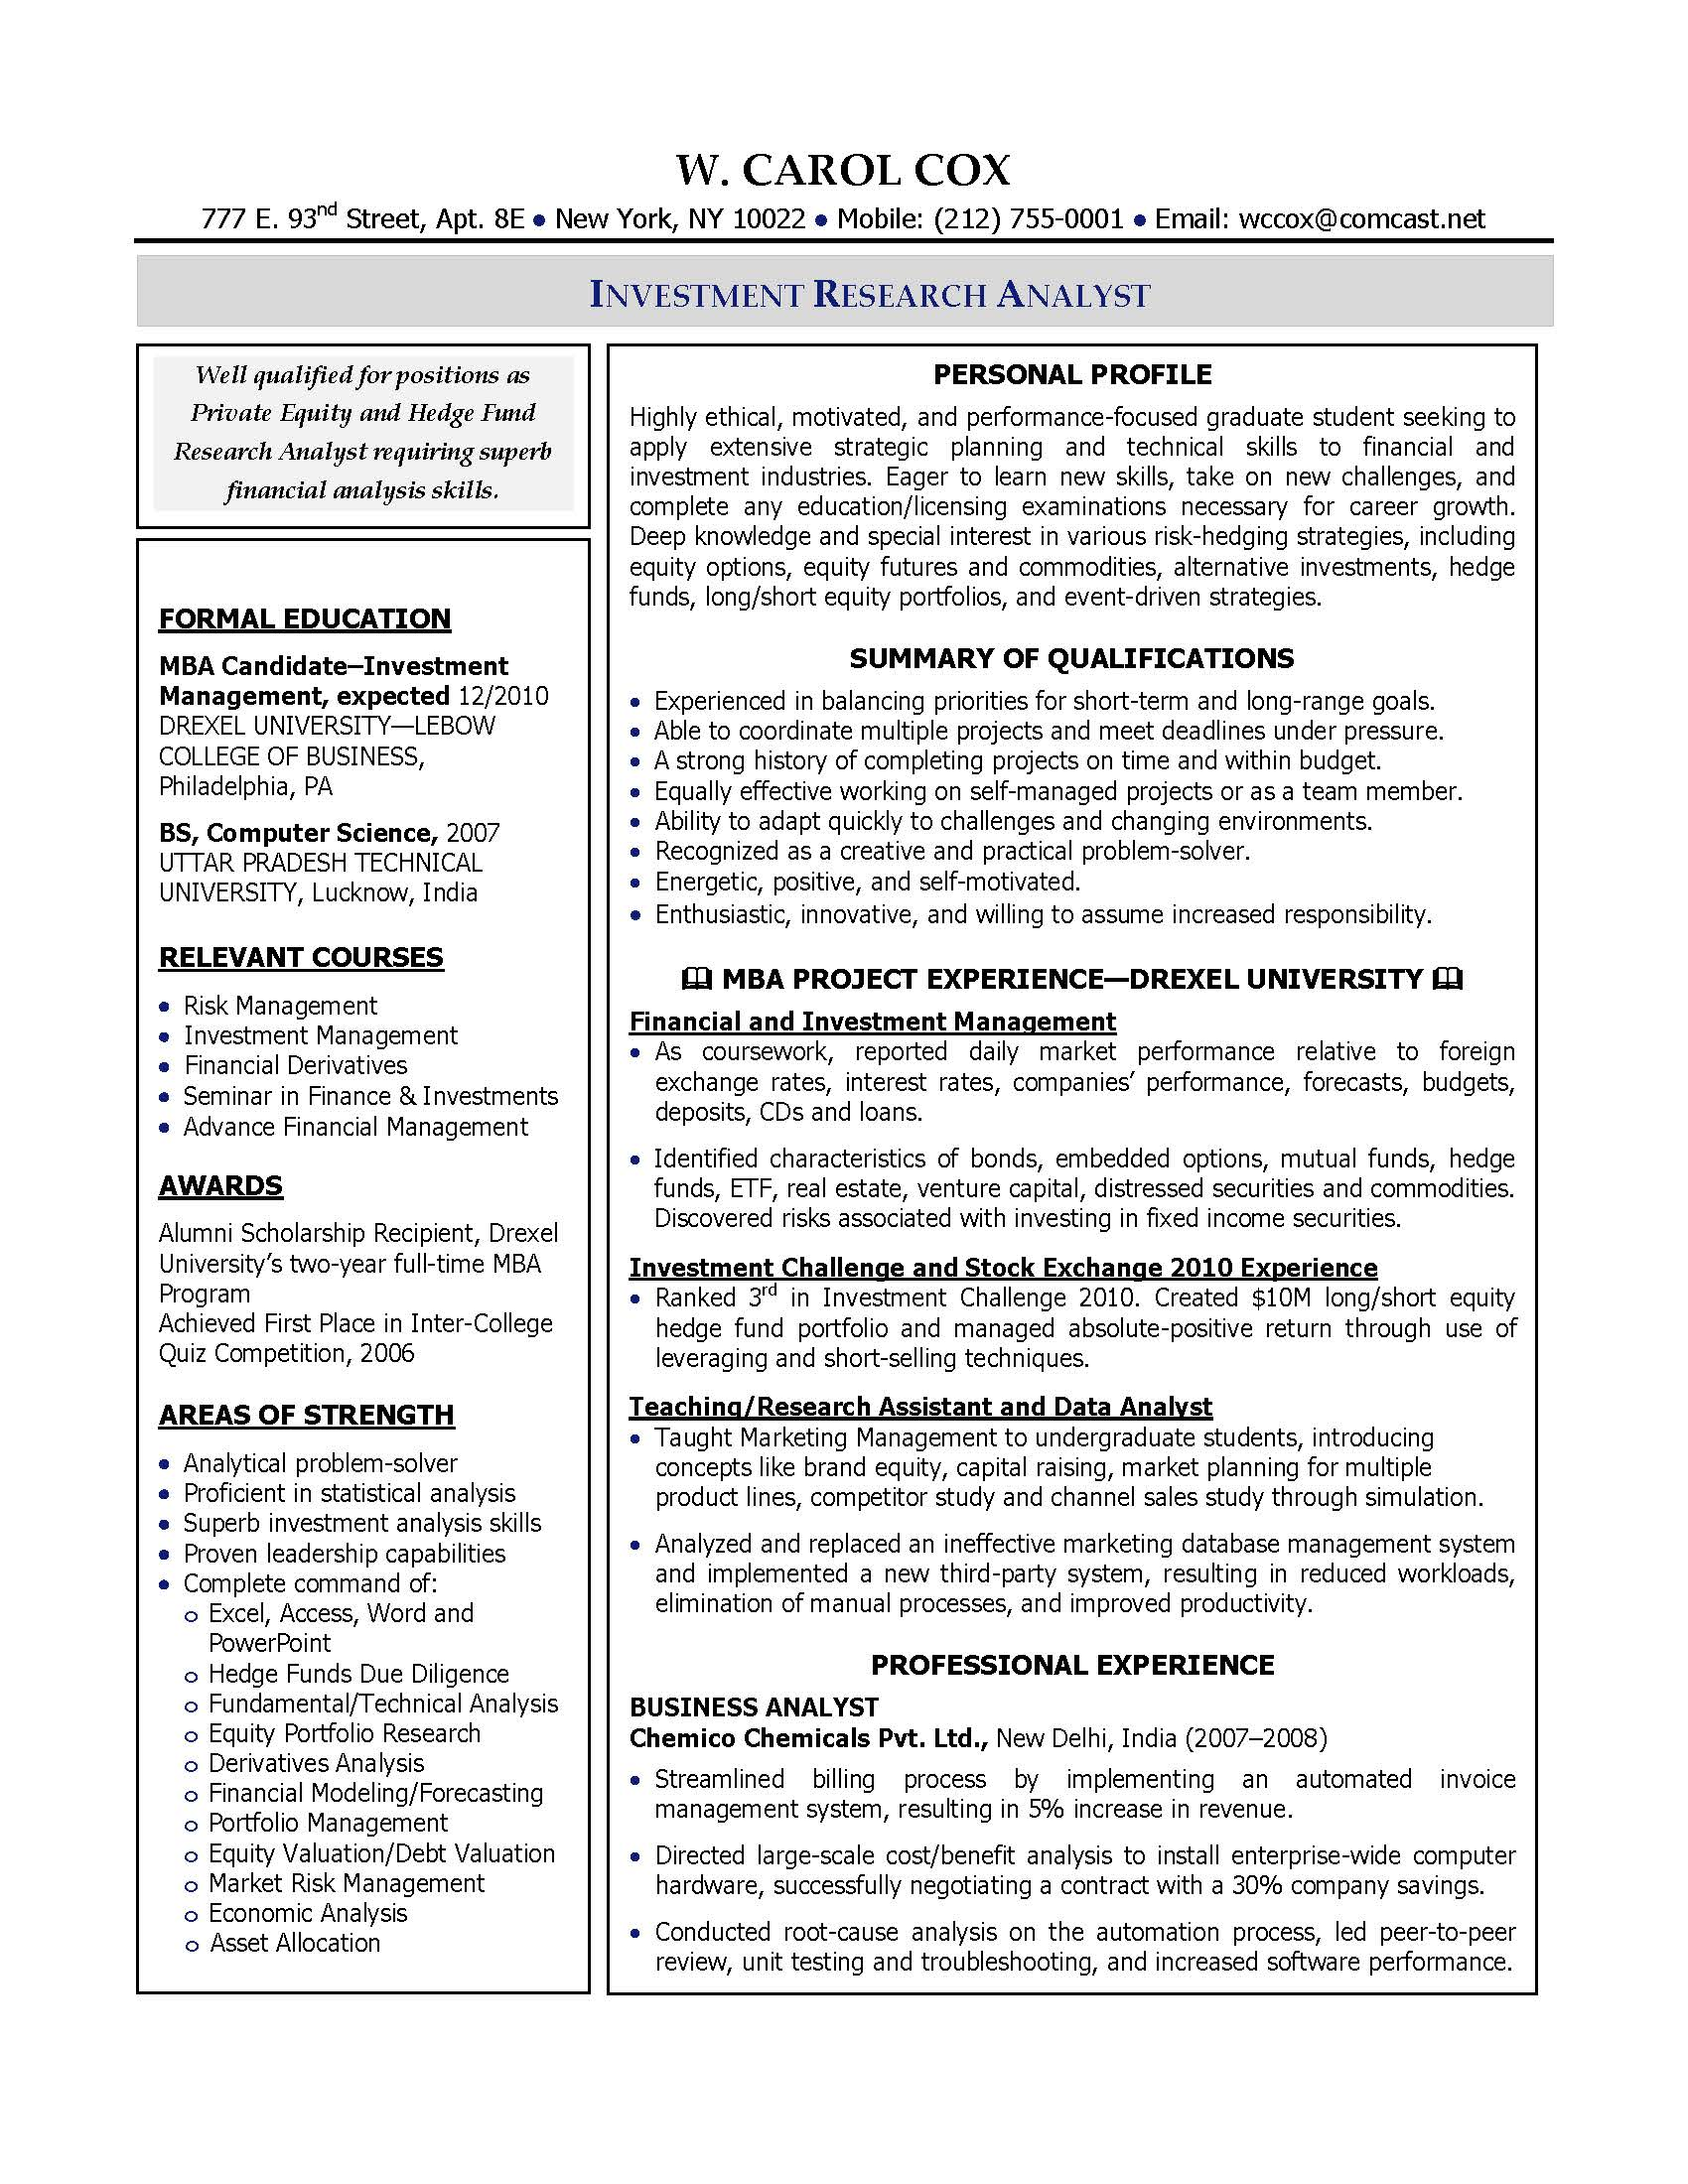 investment research analyst resume sample provided by elite resume writing services - Sample Access Management Resume